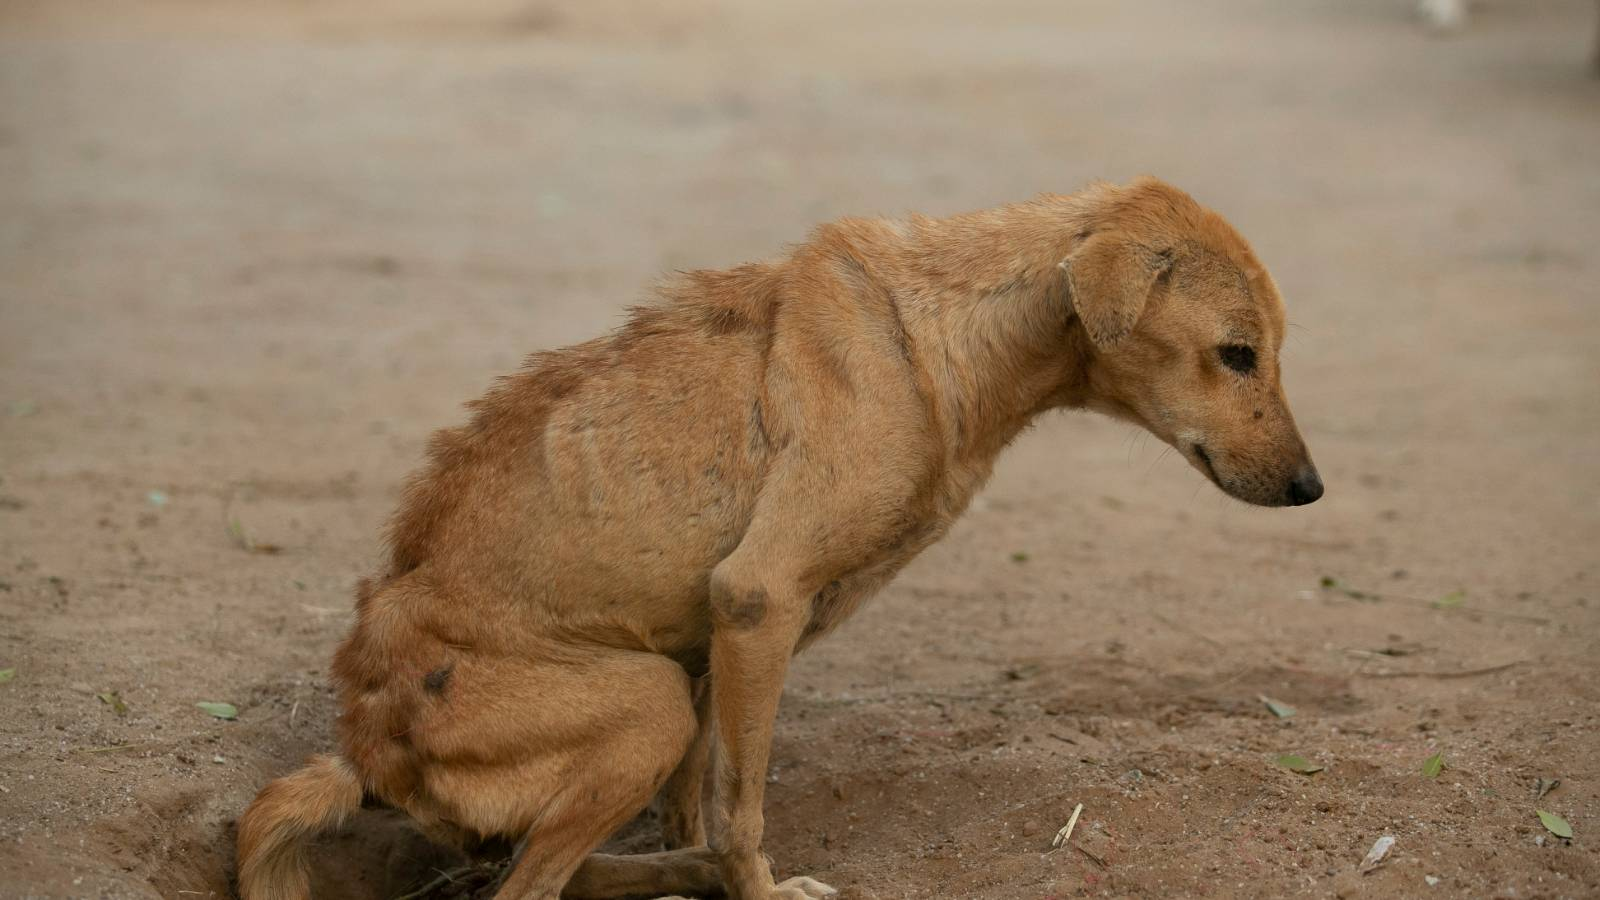 Malnutrition in strays